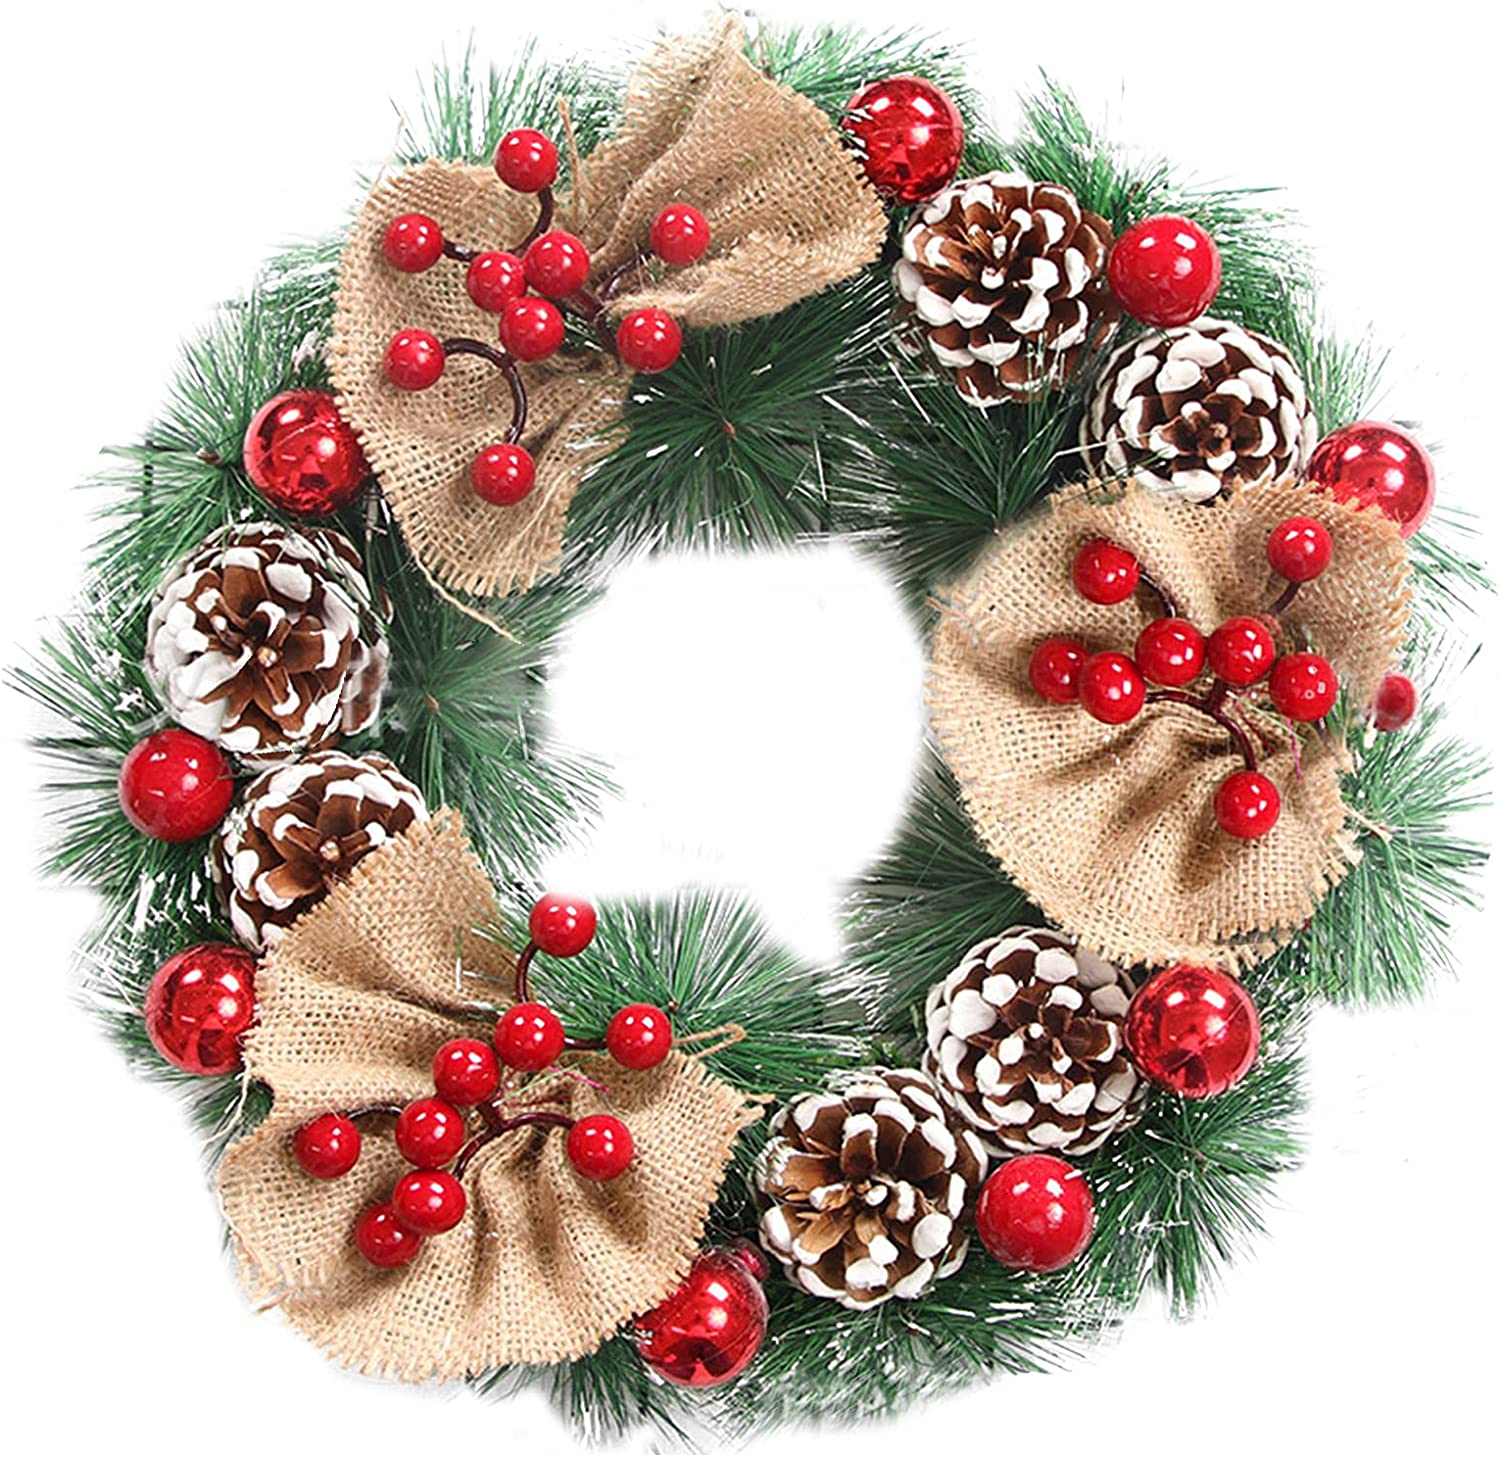 LUKETURE Max 44% OFF Christmas Wreaths for New popularity Front 12 Inches Artificial Door